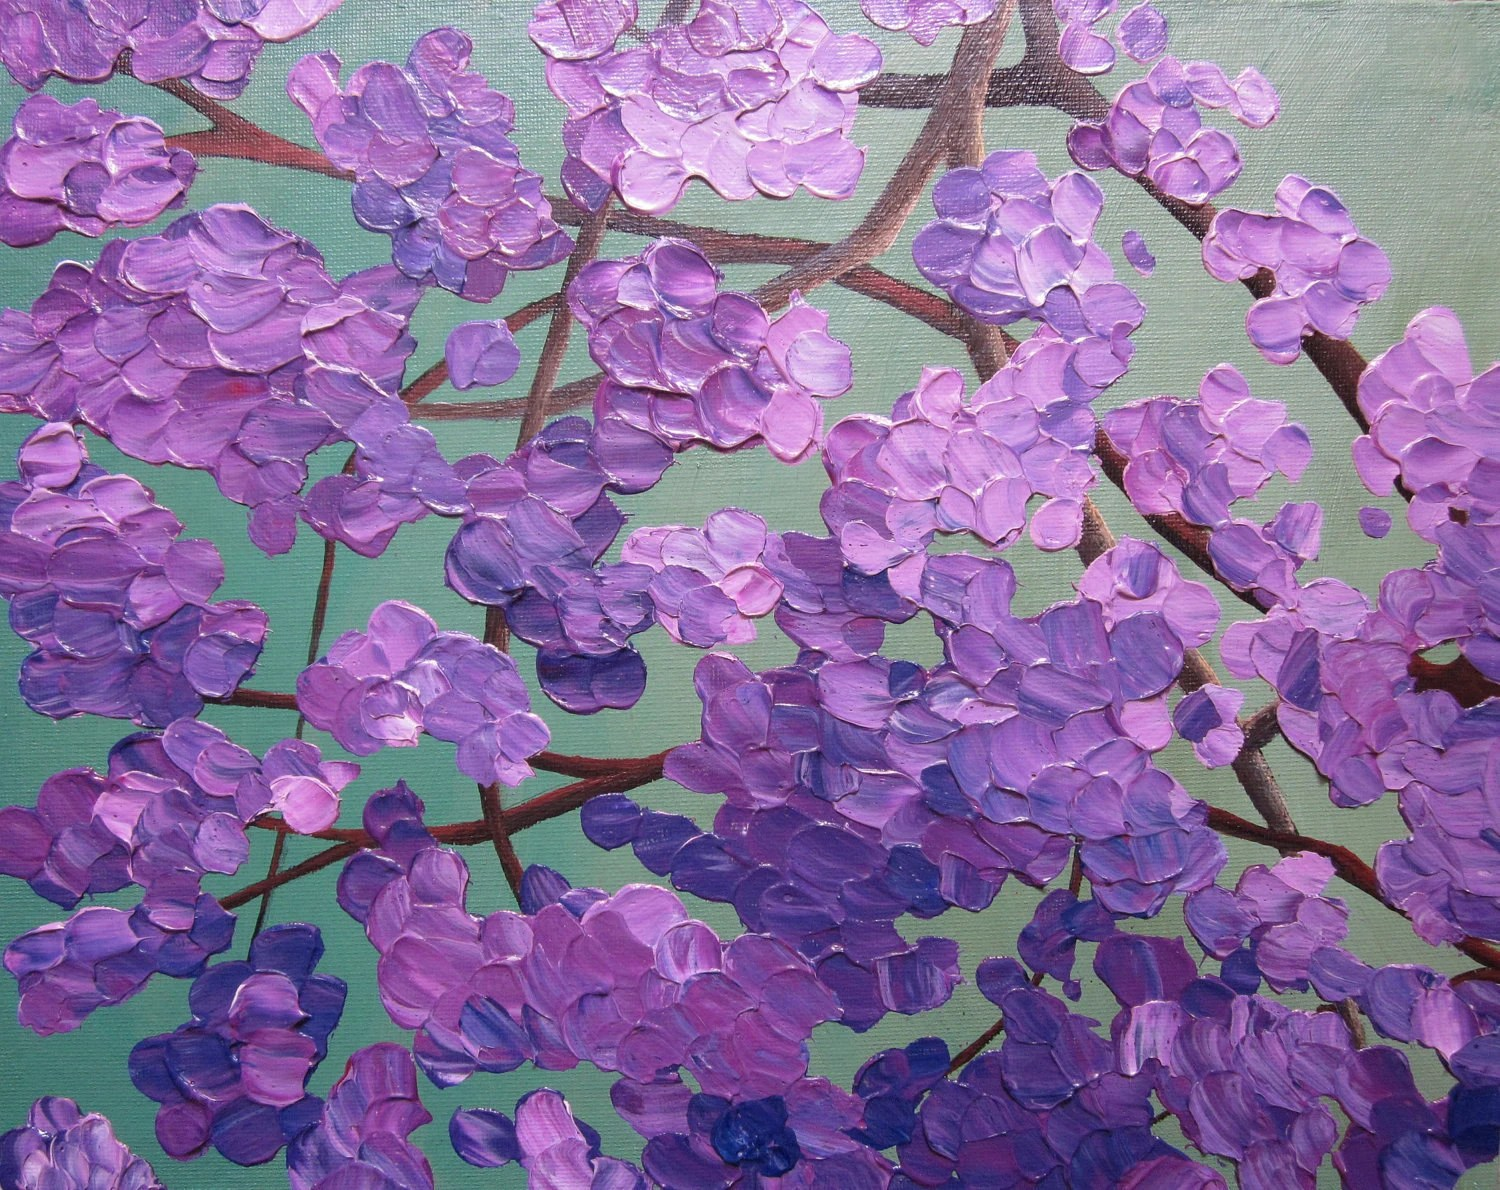 Flowering Tree Painting Acrylic Abstract Floral 11X14 Knife